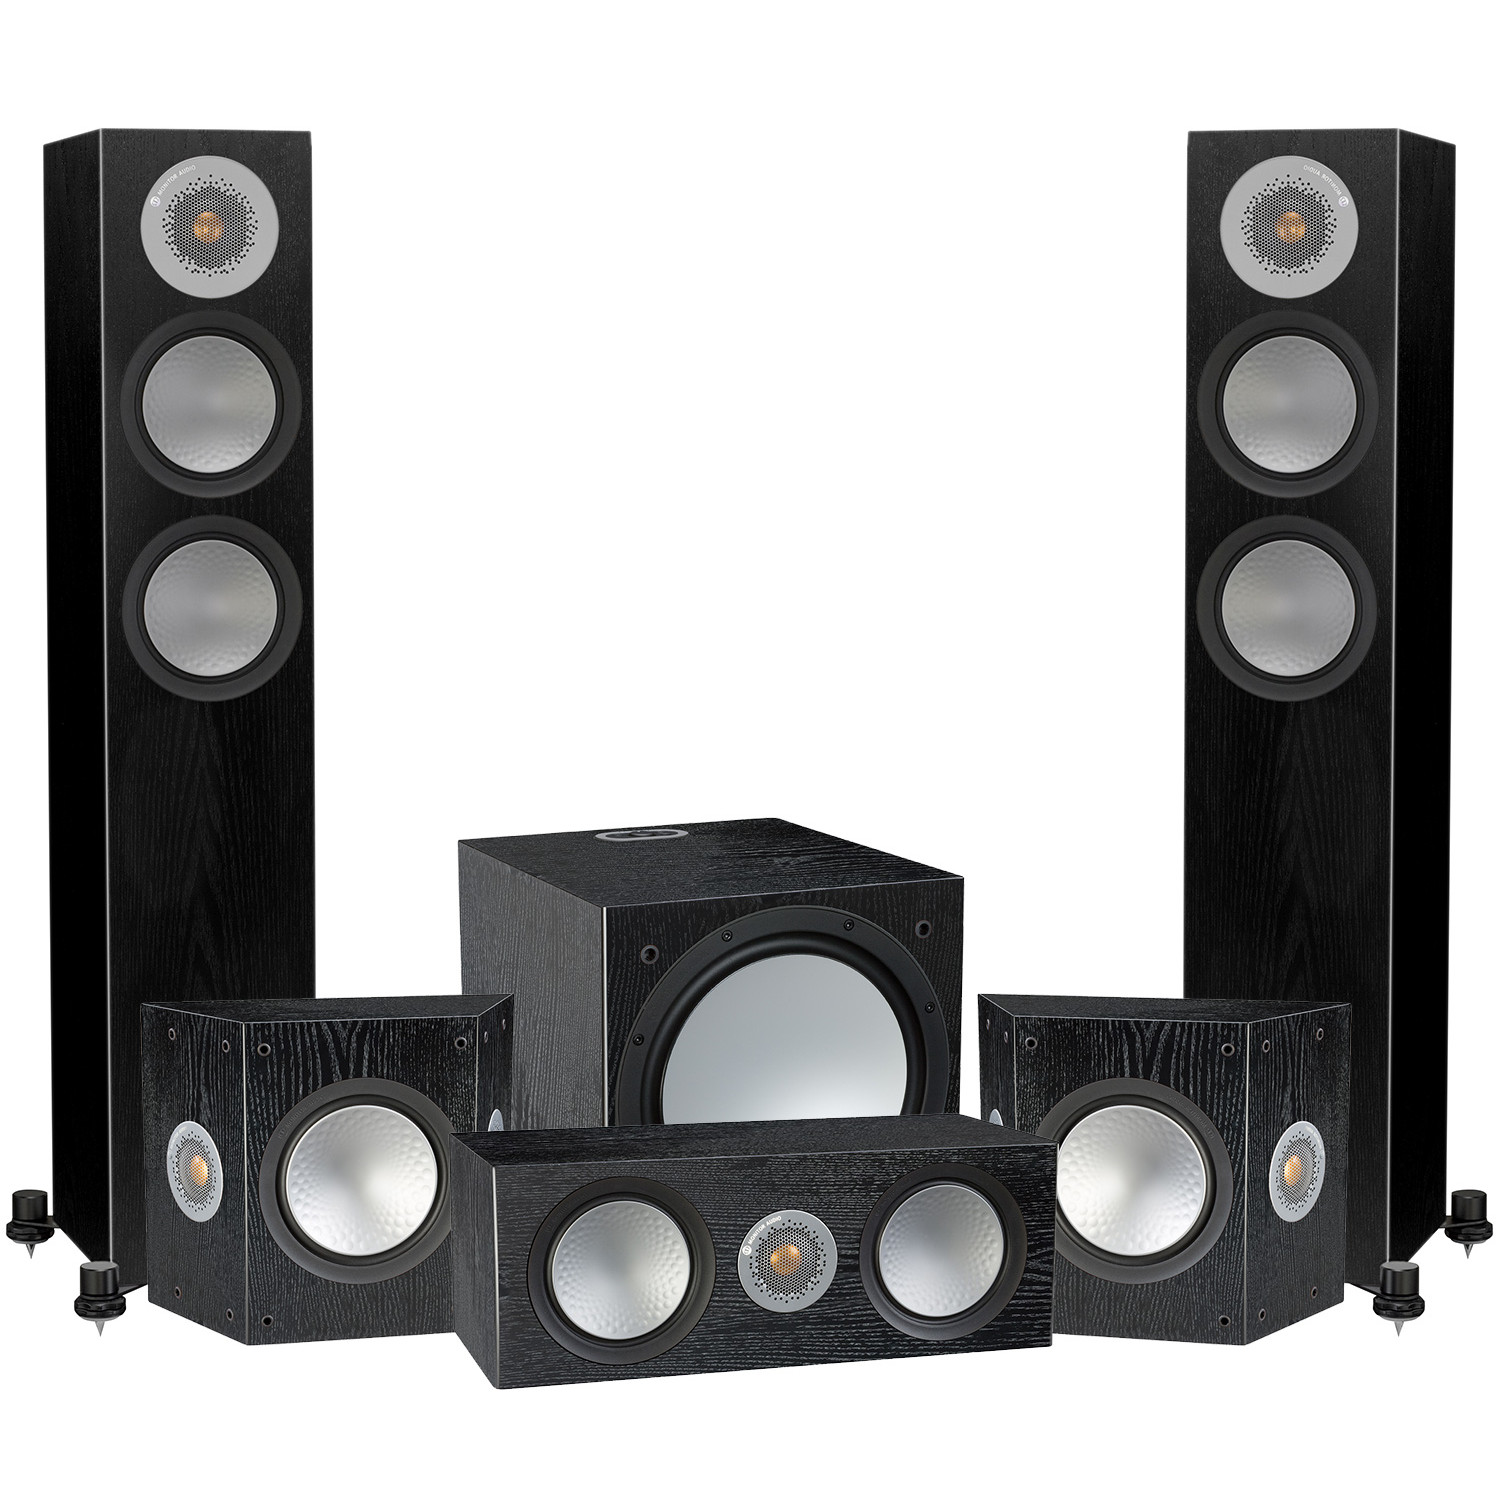 tannoy fx 5.1 review